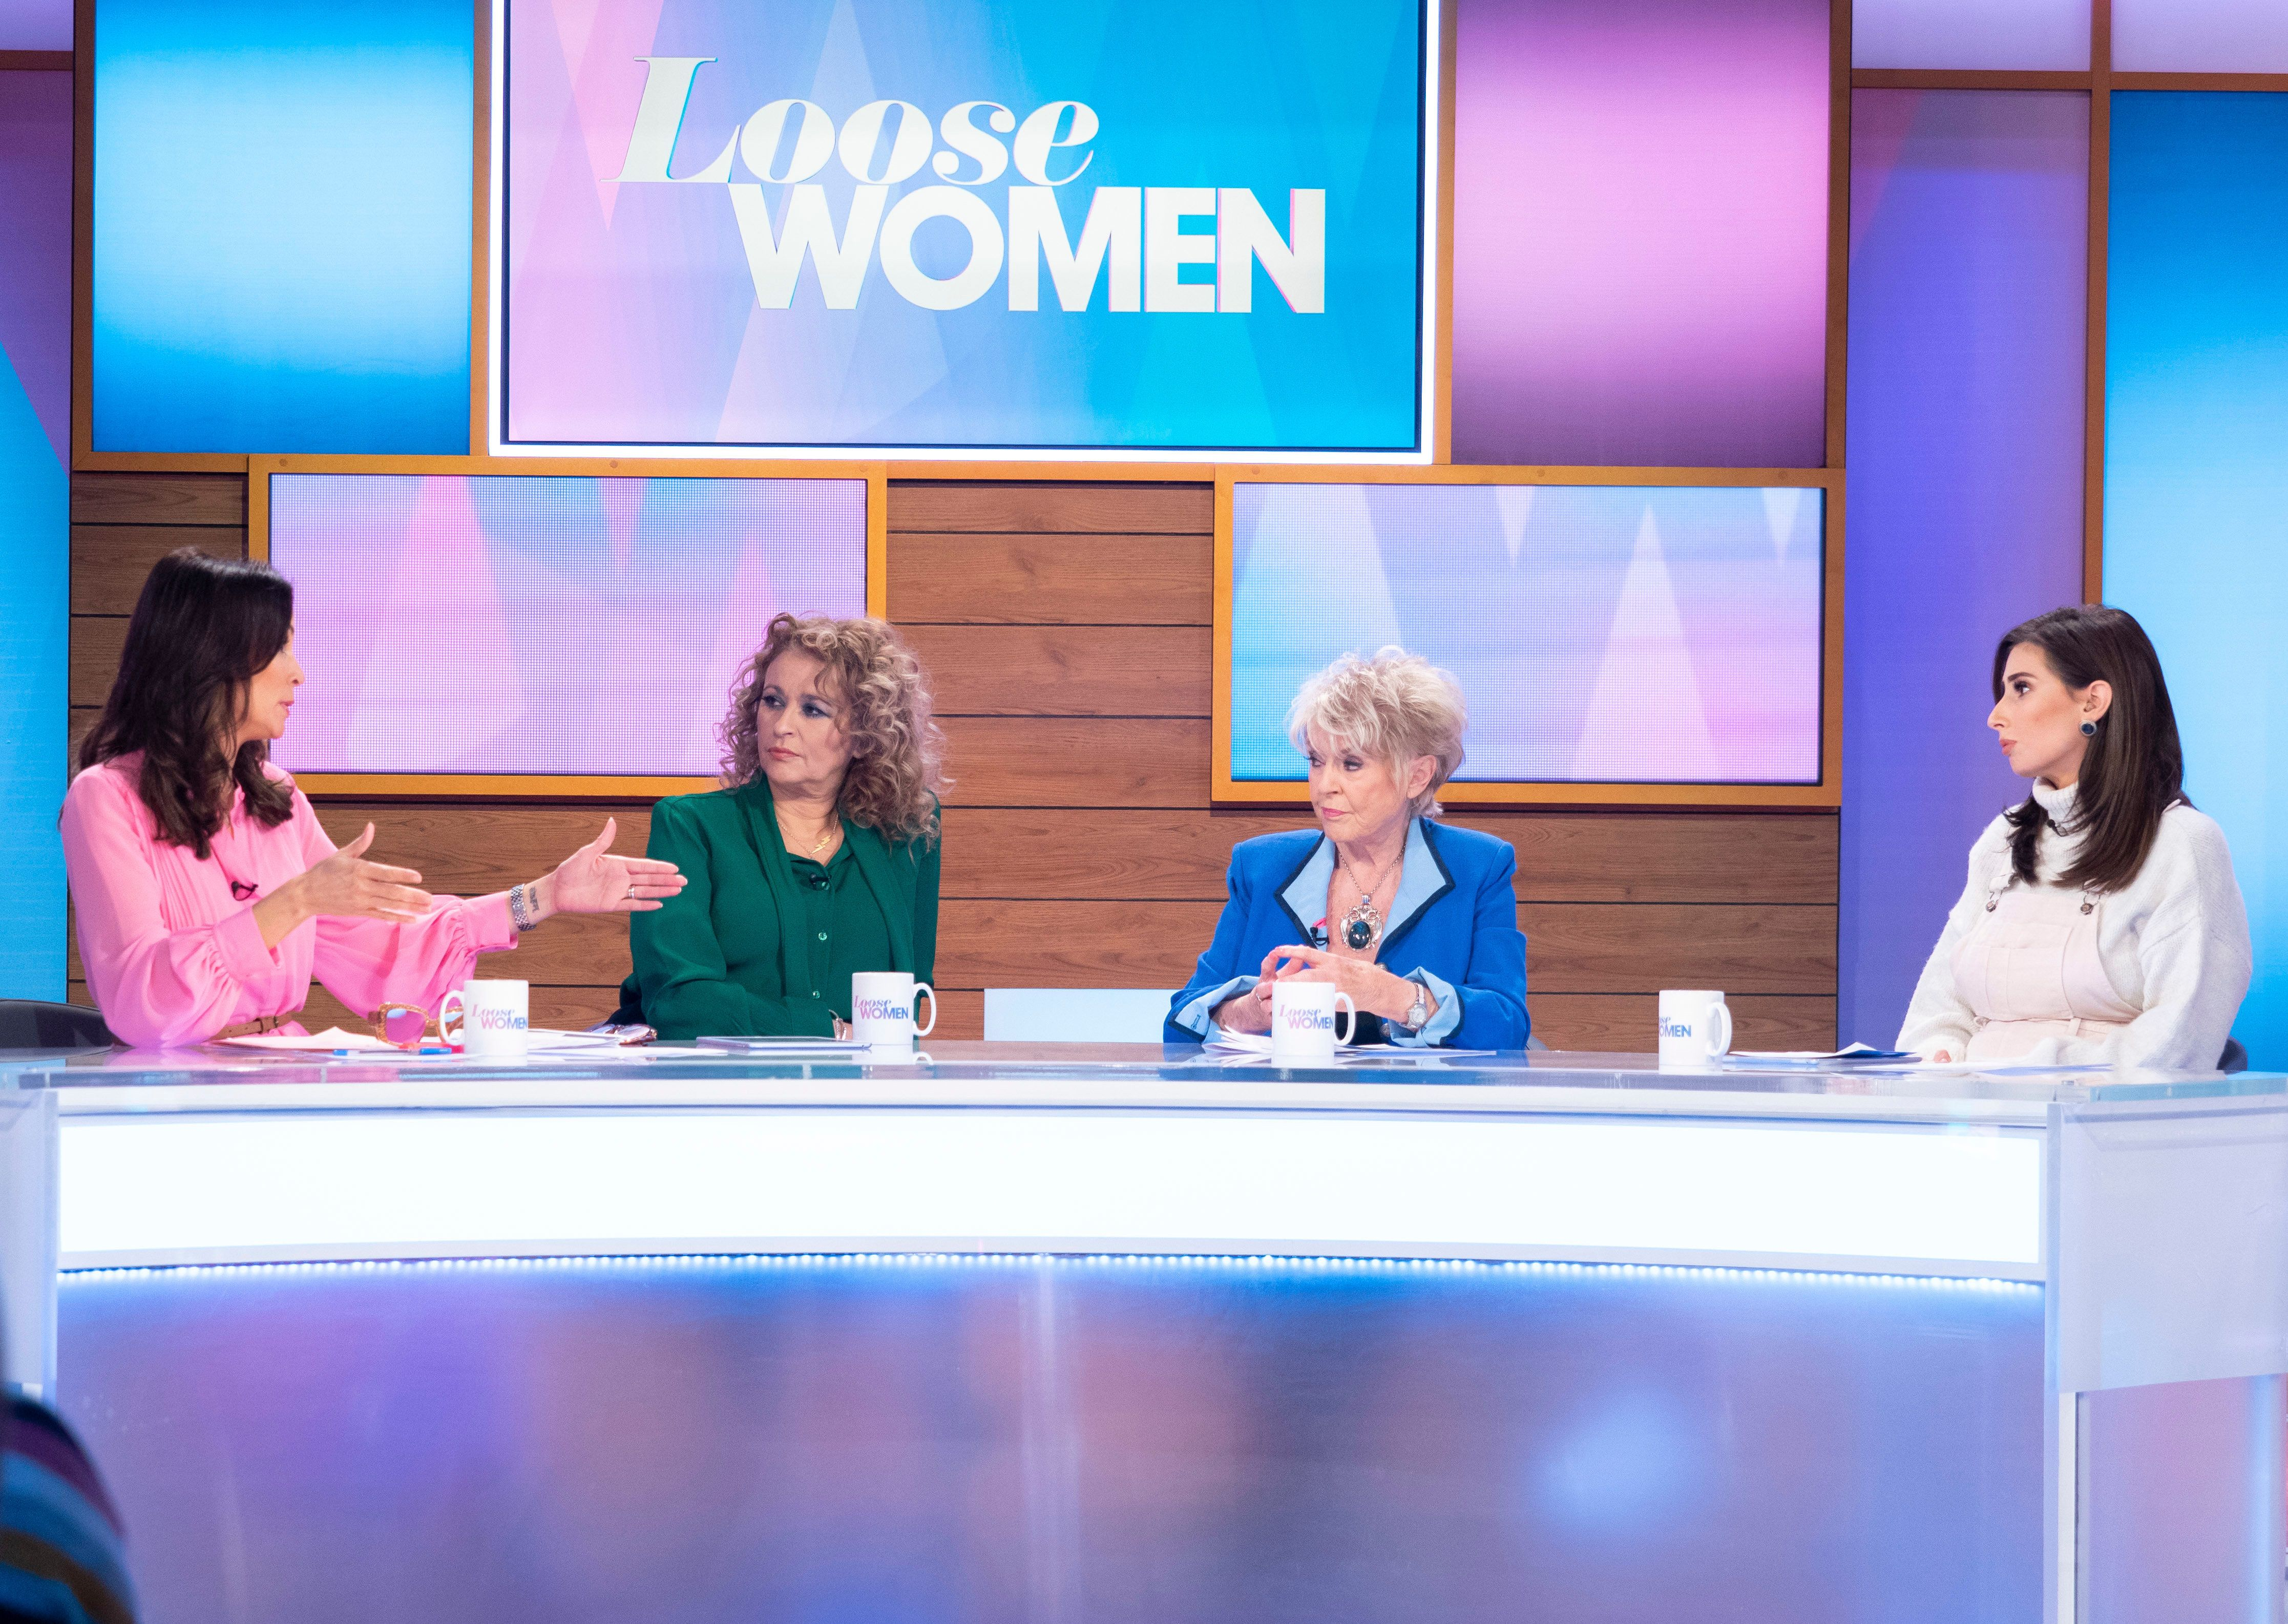 'Loose Women' Sparks Backlash Over Comments During Trans